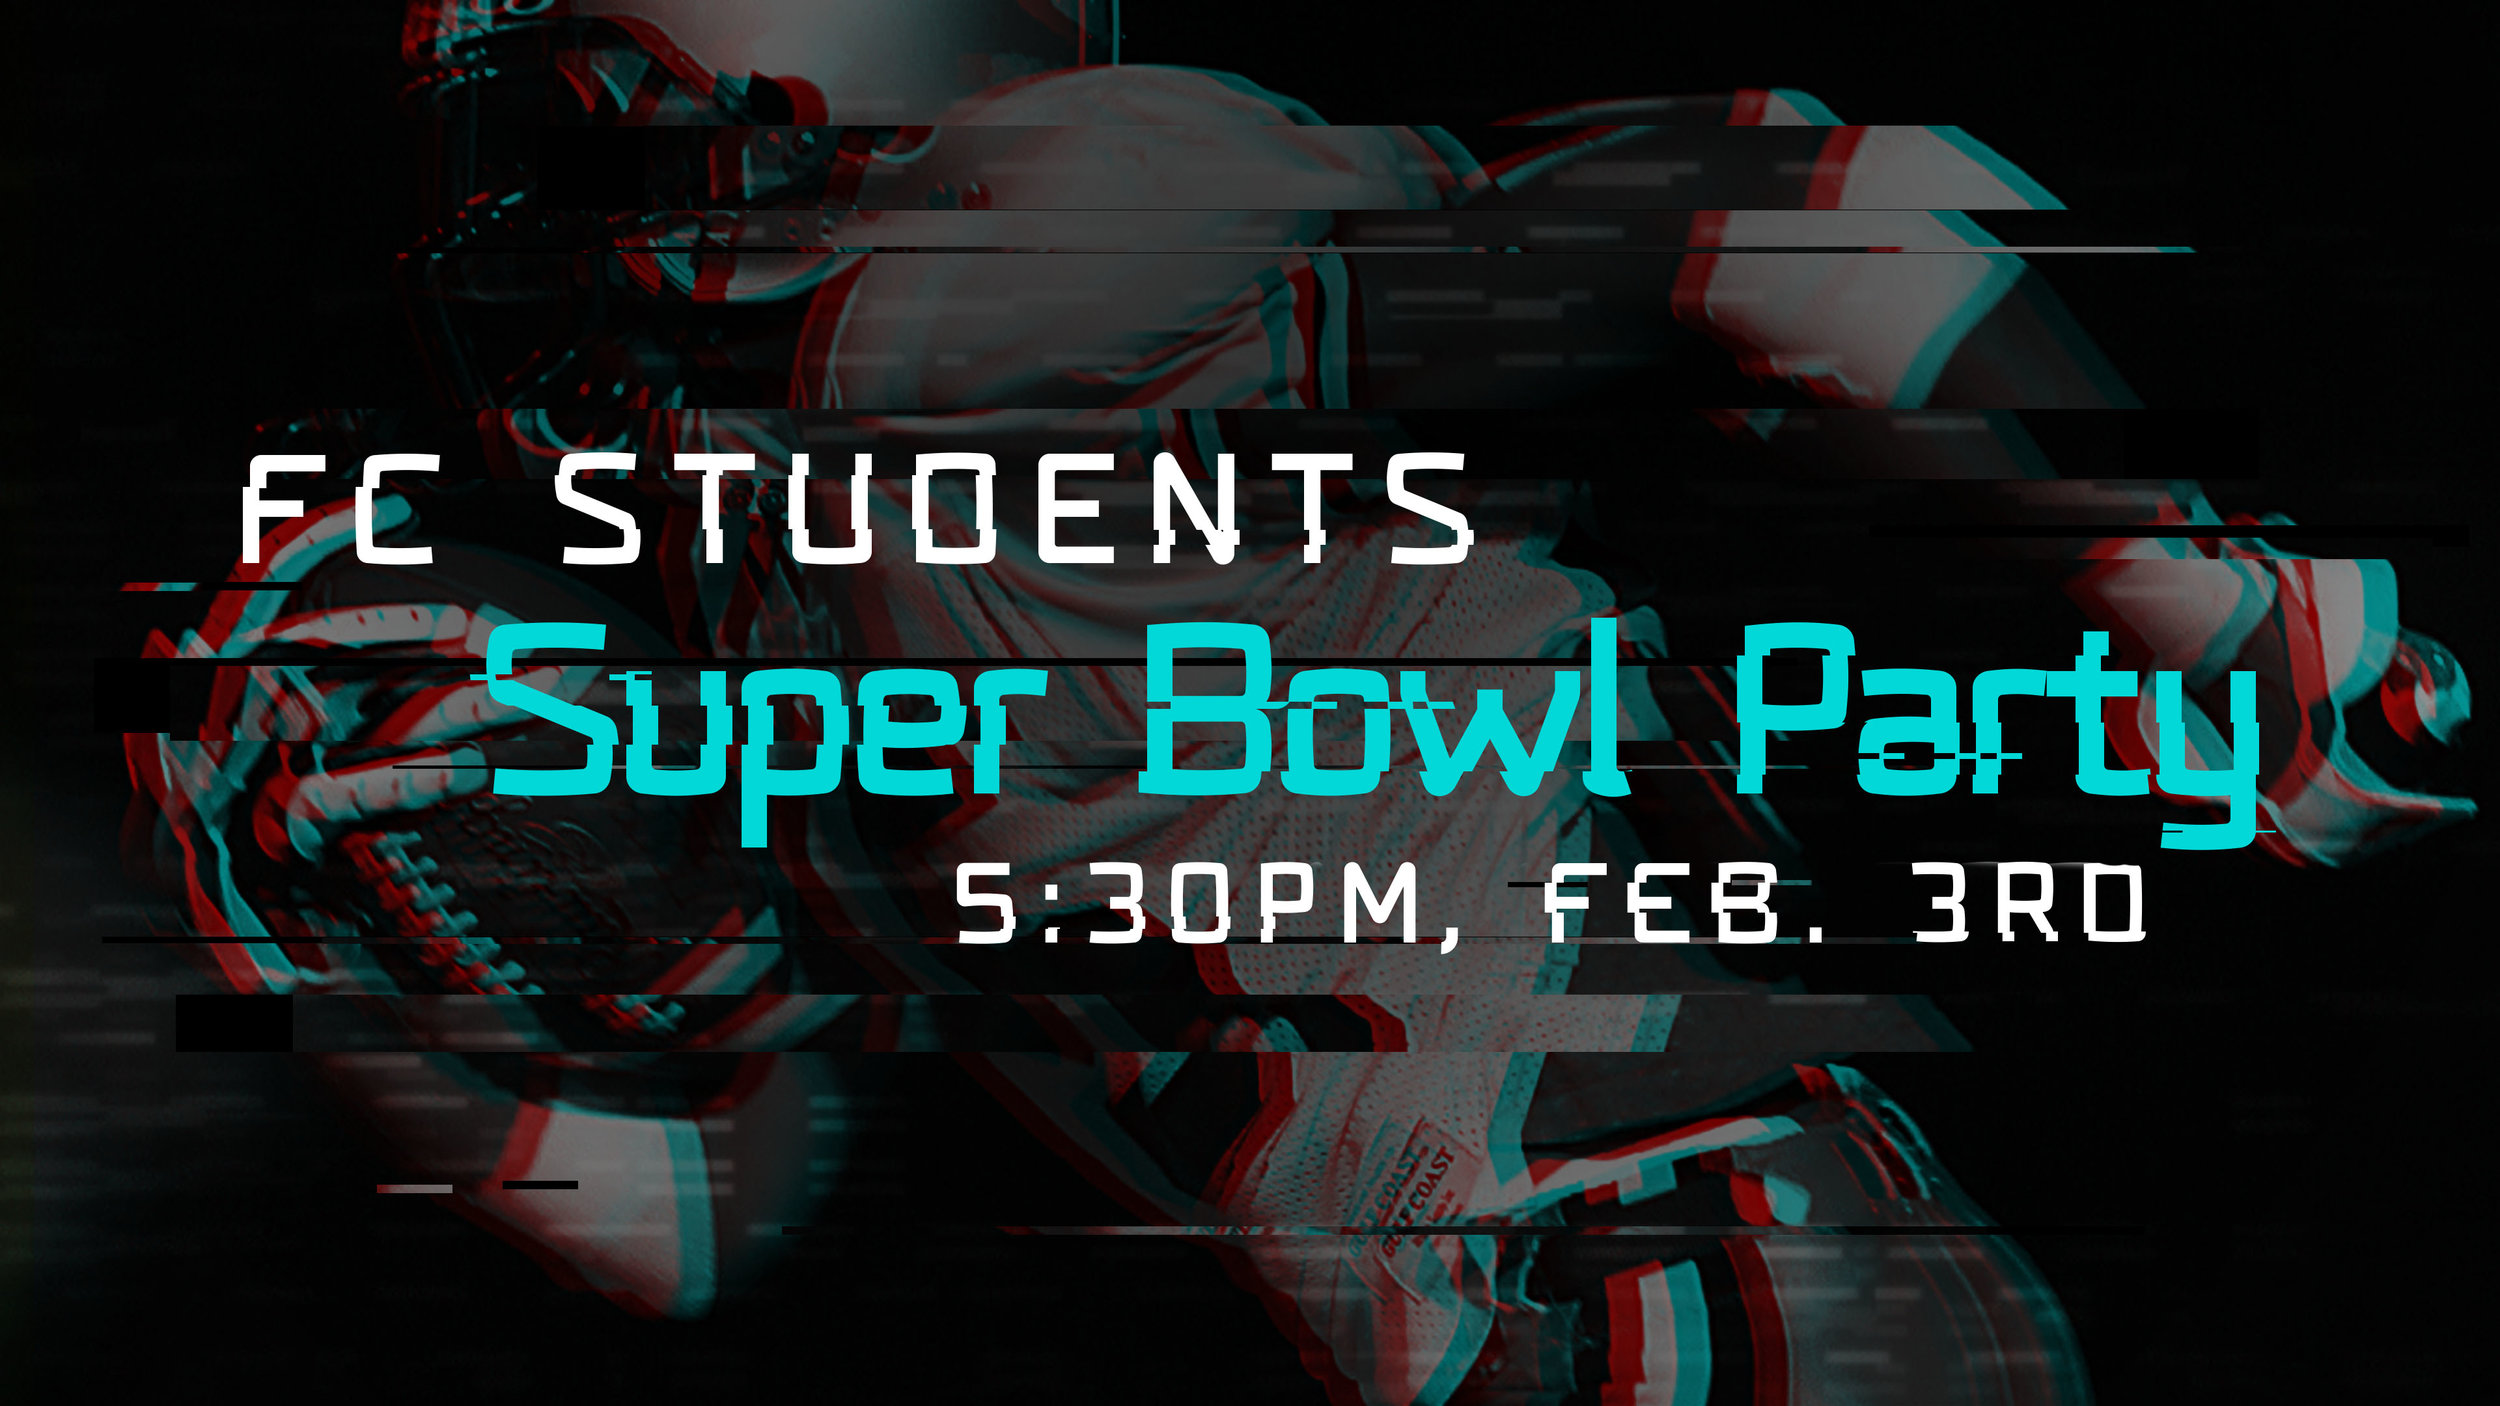 fc students superbowl party.jpg